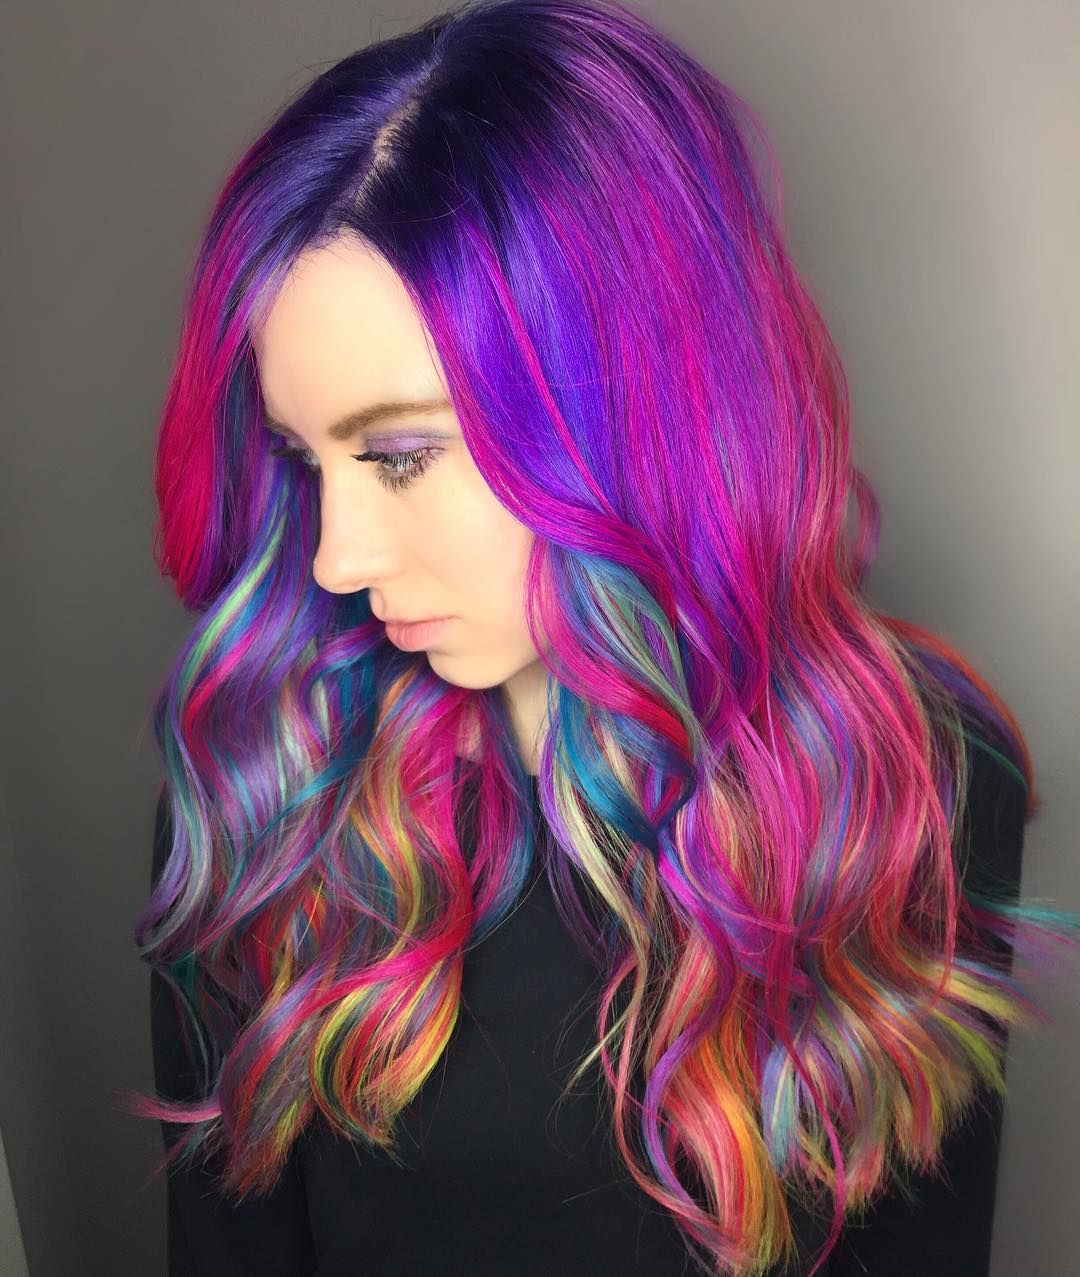 30 Cool Hair Colors To Try IN 2019 in 2020 (With images